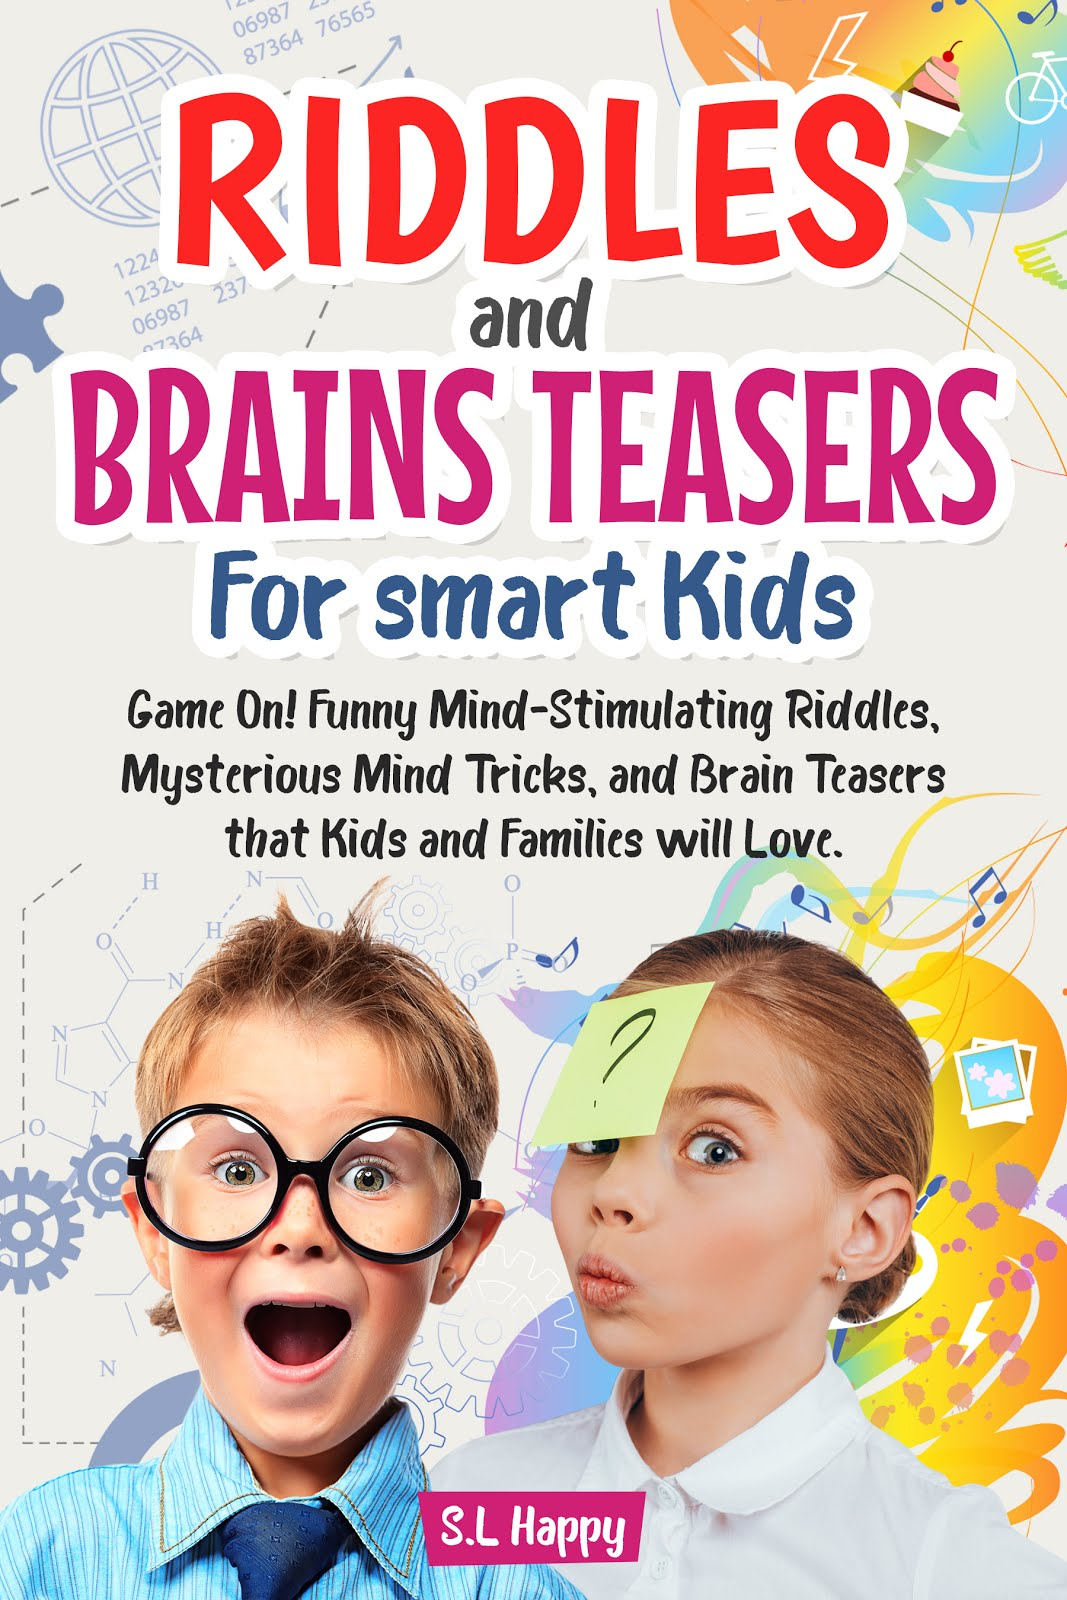 Riddles and Brain Teasers For smart Kids